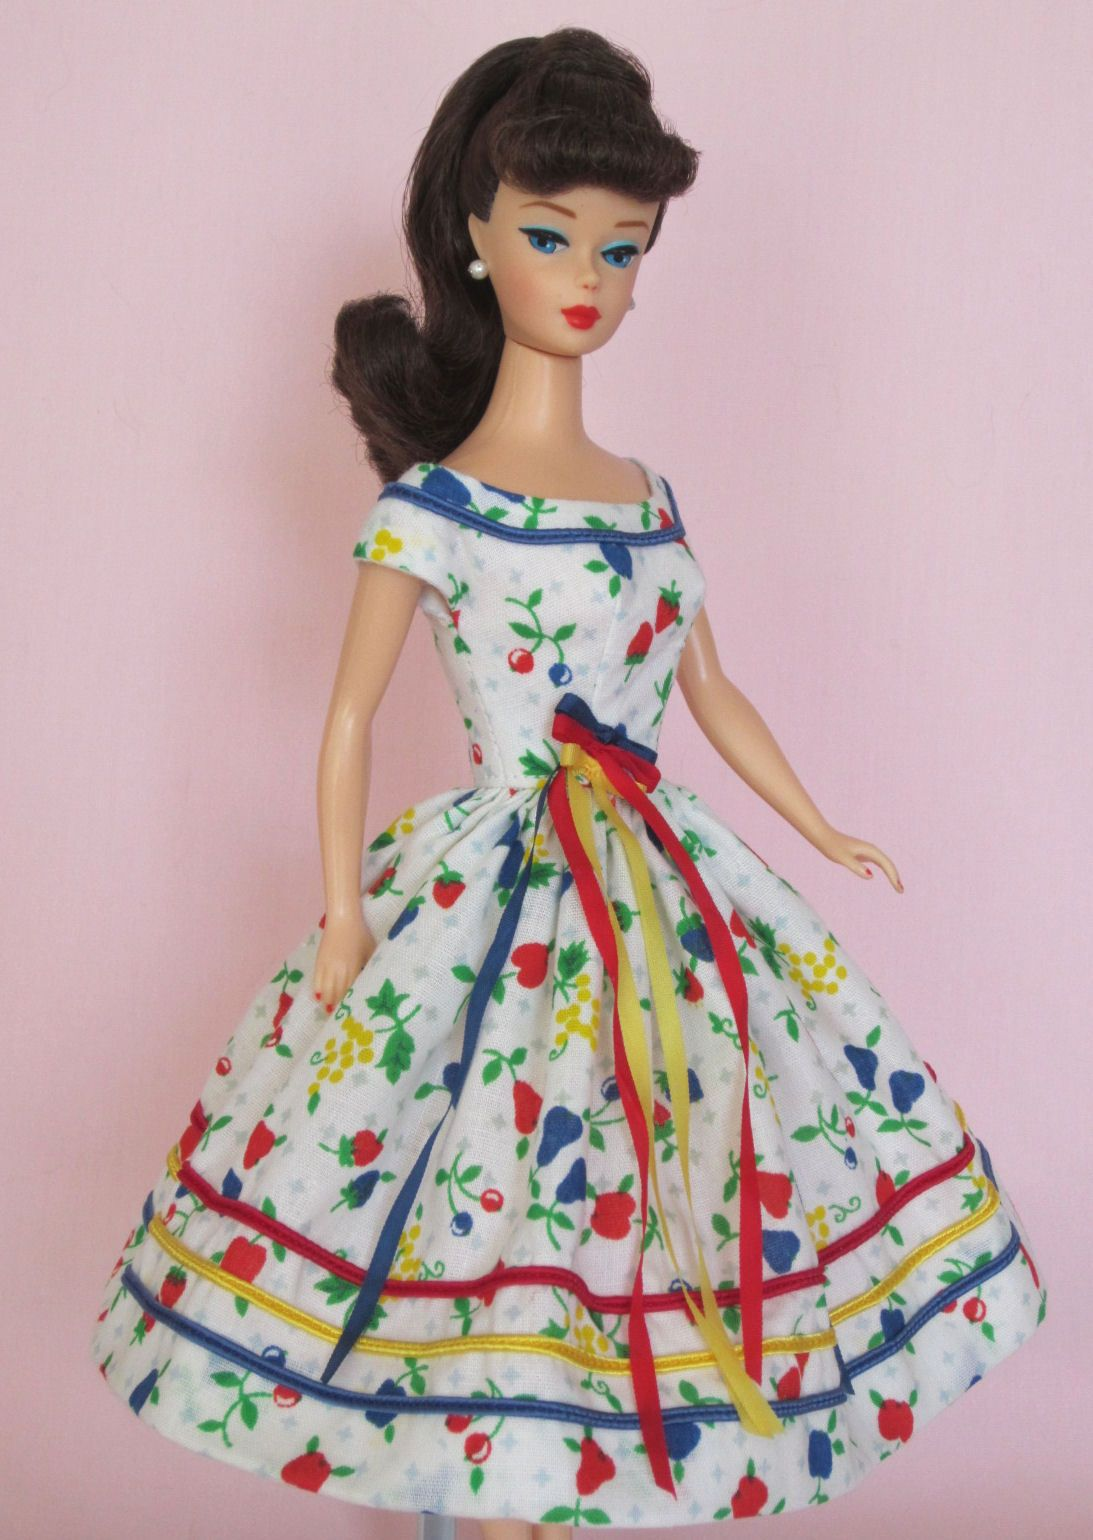 Morning Market Vintage Barbie Doll Dress Reproduction Repro Barbie Clothes On Ebay Http Www Eb Vintage Barbie Clothes Vintage Barbie Dolls Old Barbie Dolls